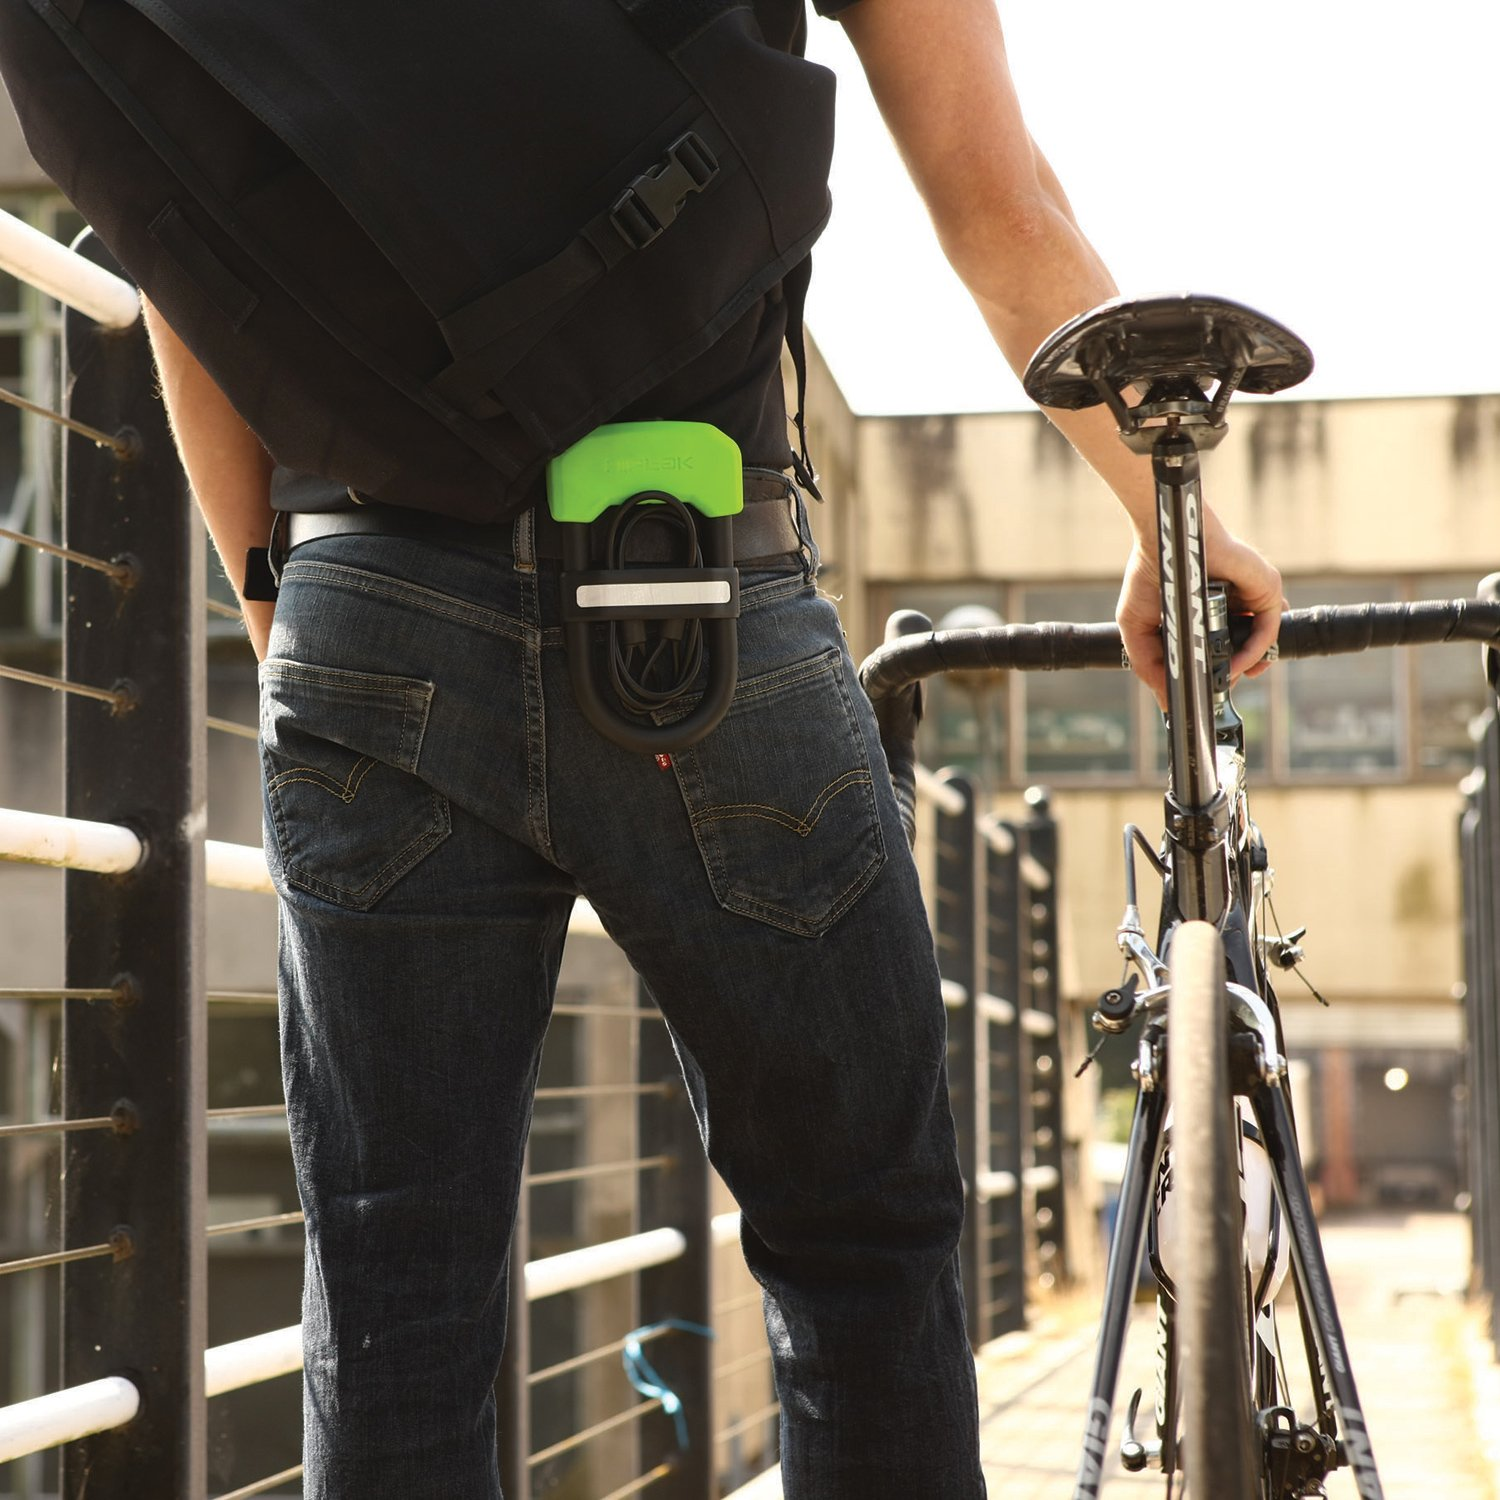 Hiplok DC Wearable Lock with Clip 13mm